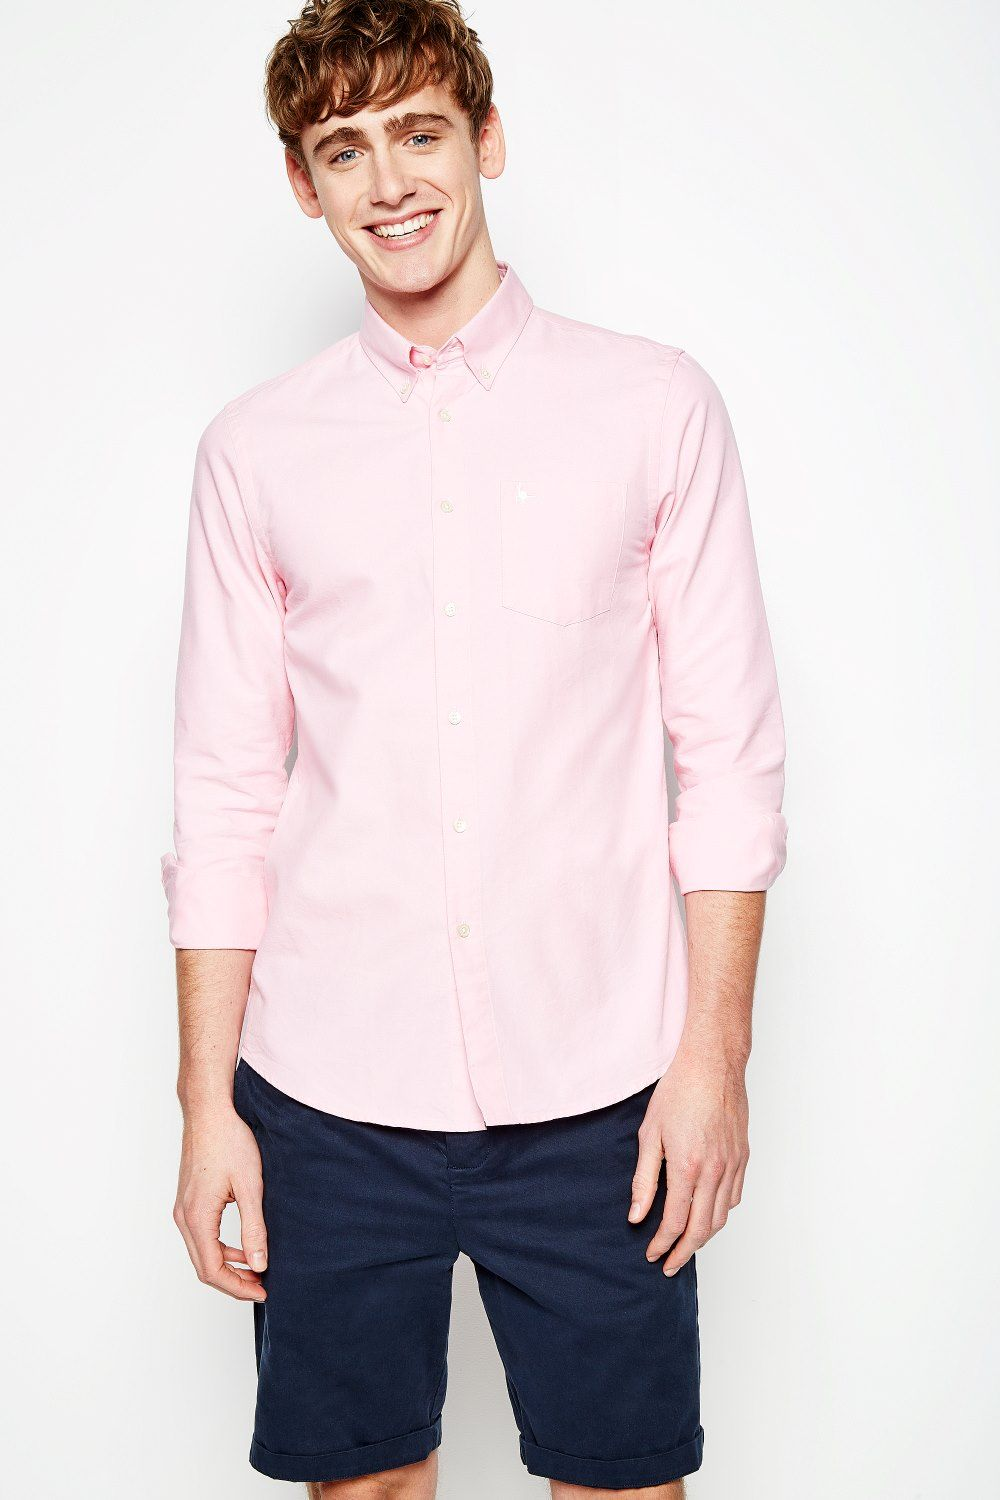 Oxfords · The Wadsworth Classic Oxford Shirt   Jack Wills